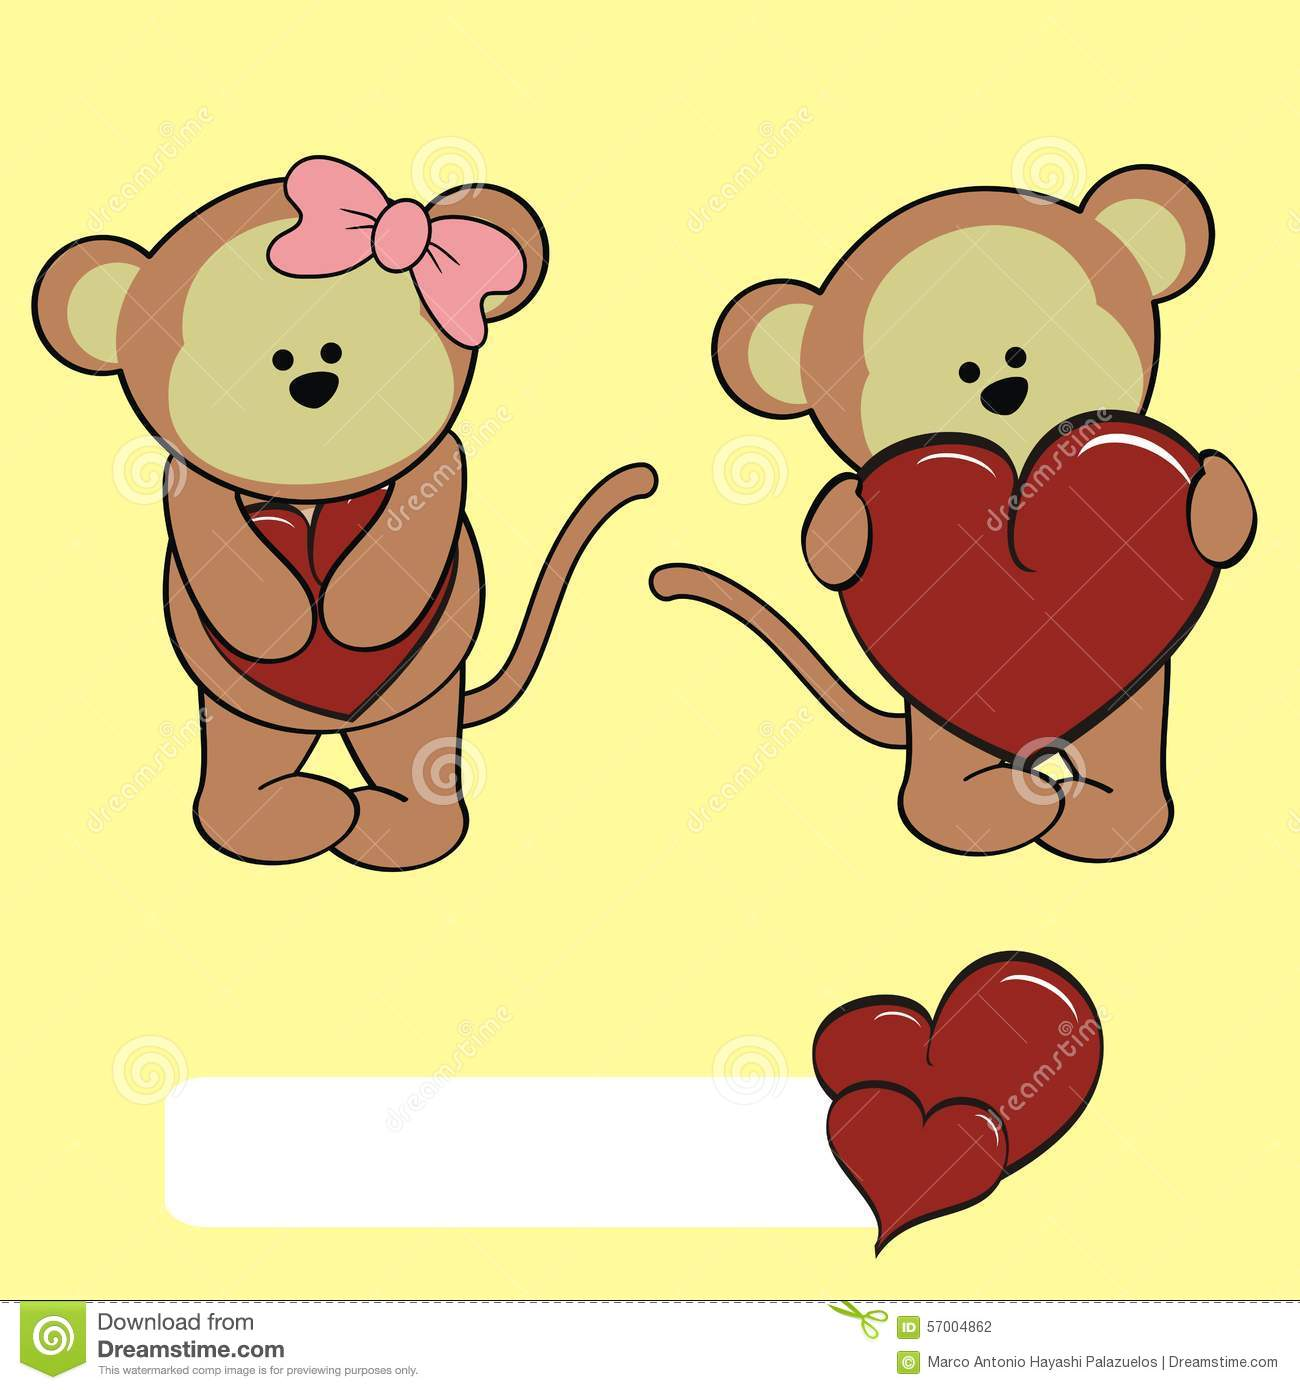 Cute cartoon monkey love - photo#7